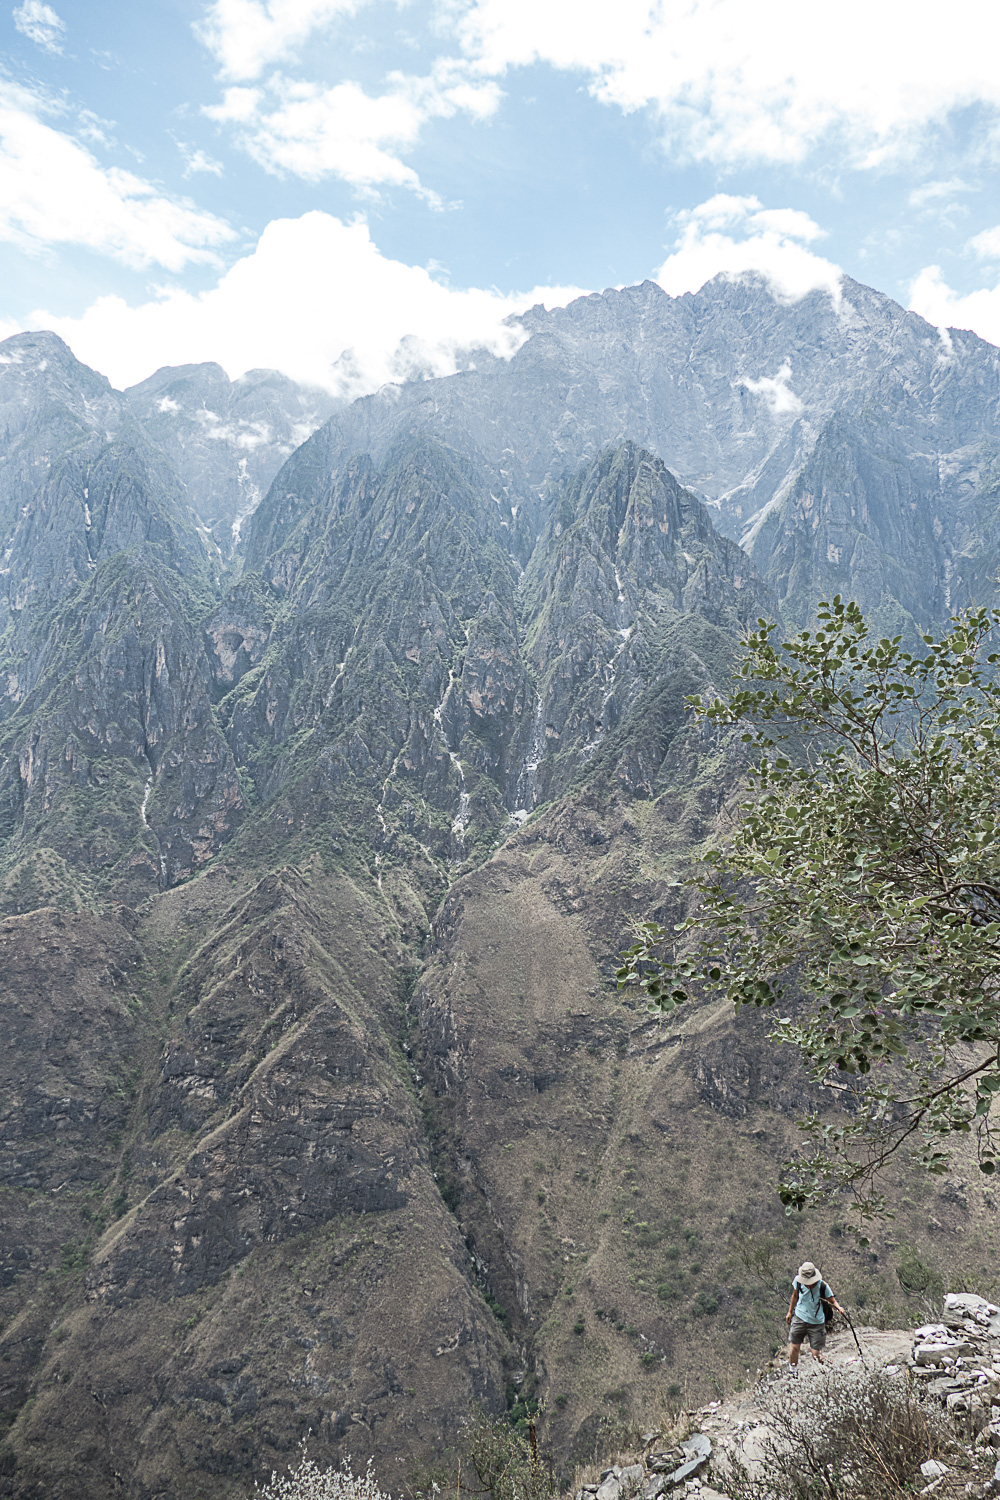 On the Tiger Leaping Gorge hike